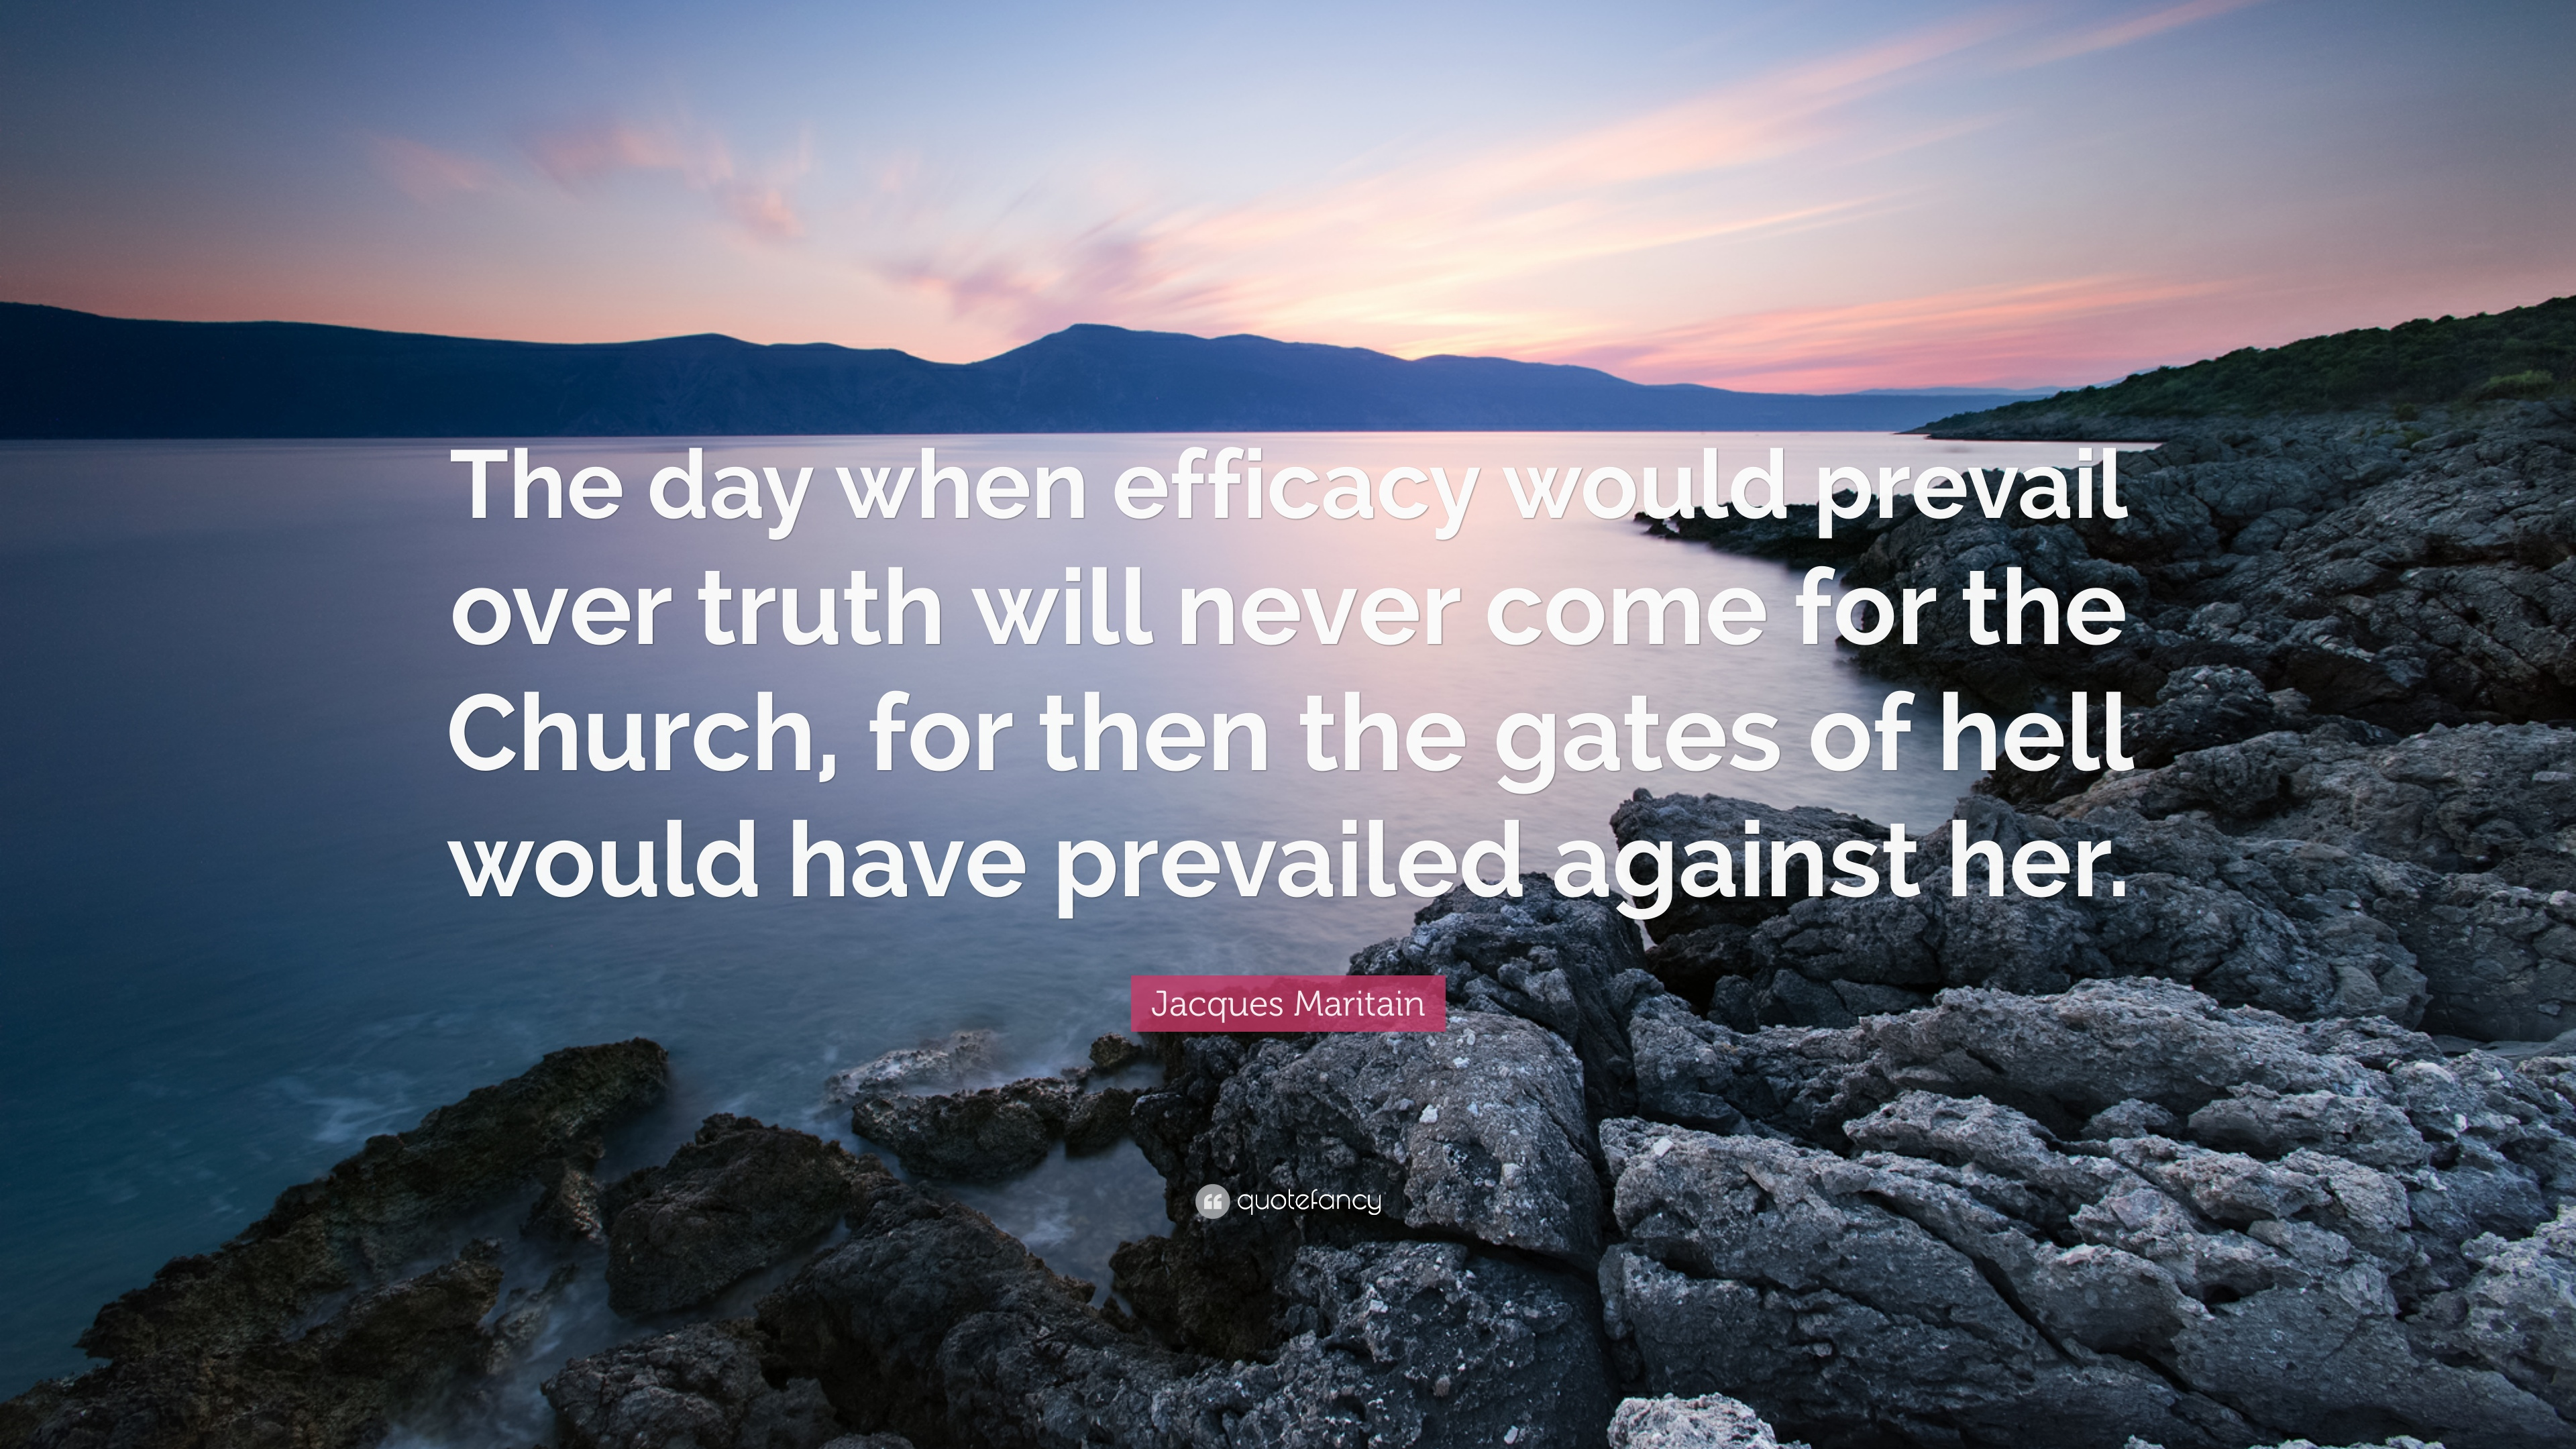 Jacques Maritain Quote The Day When Efficacy Would Prevail Over